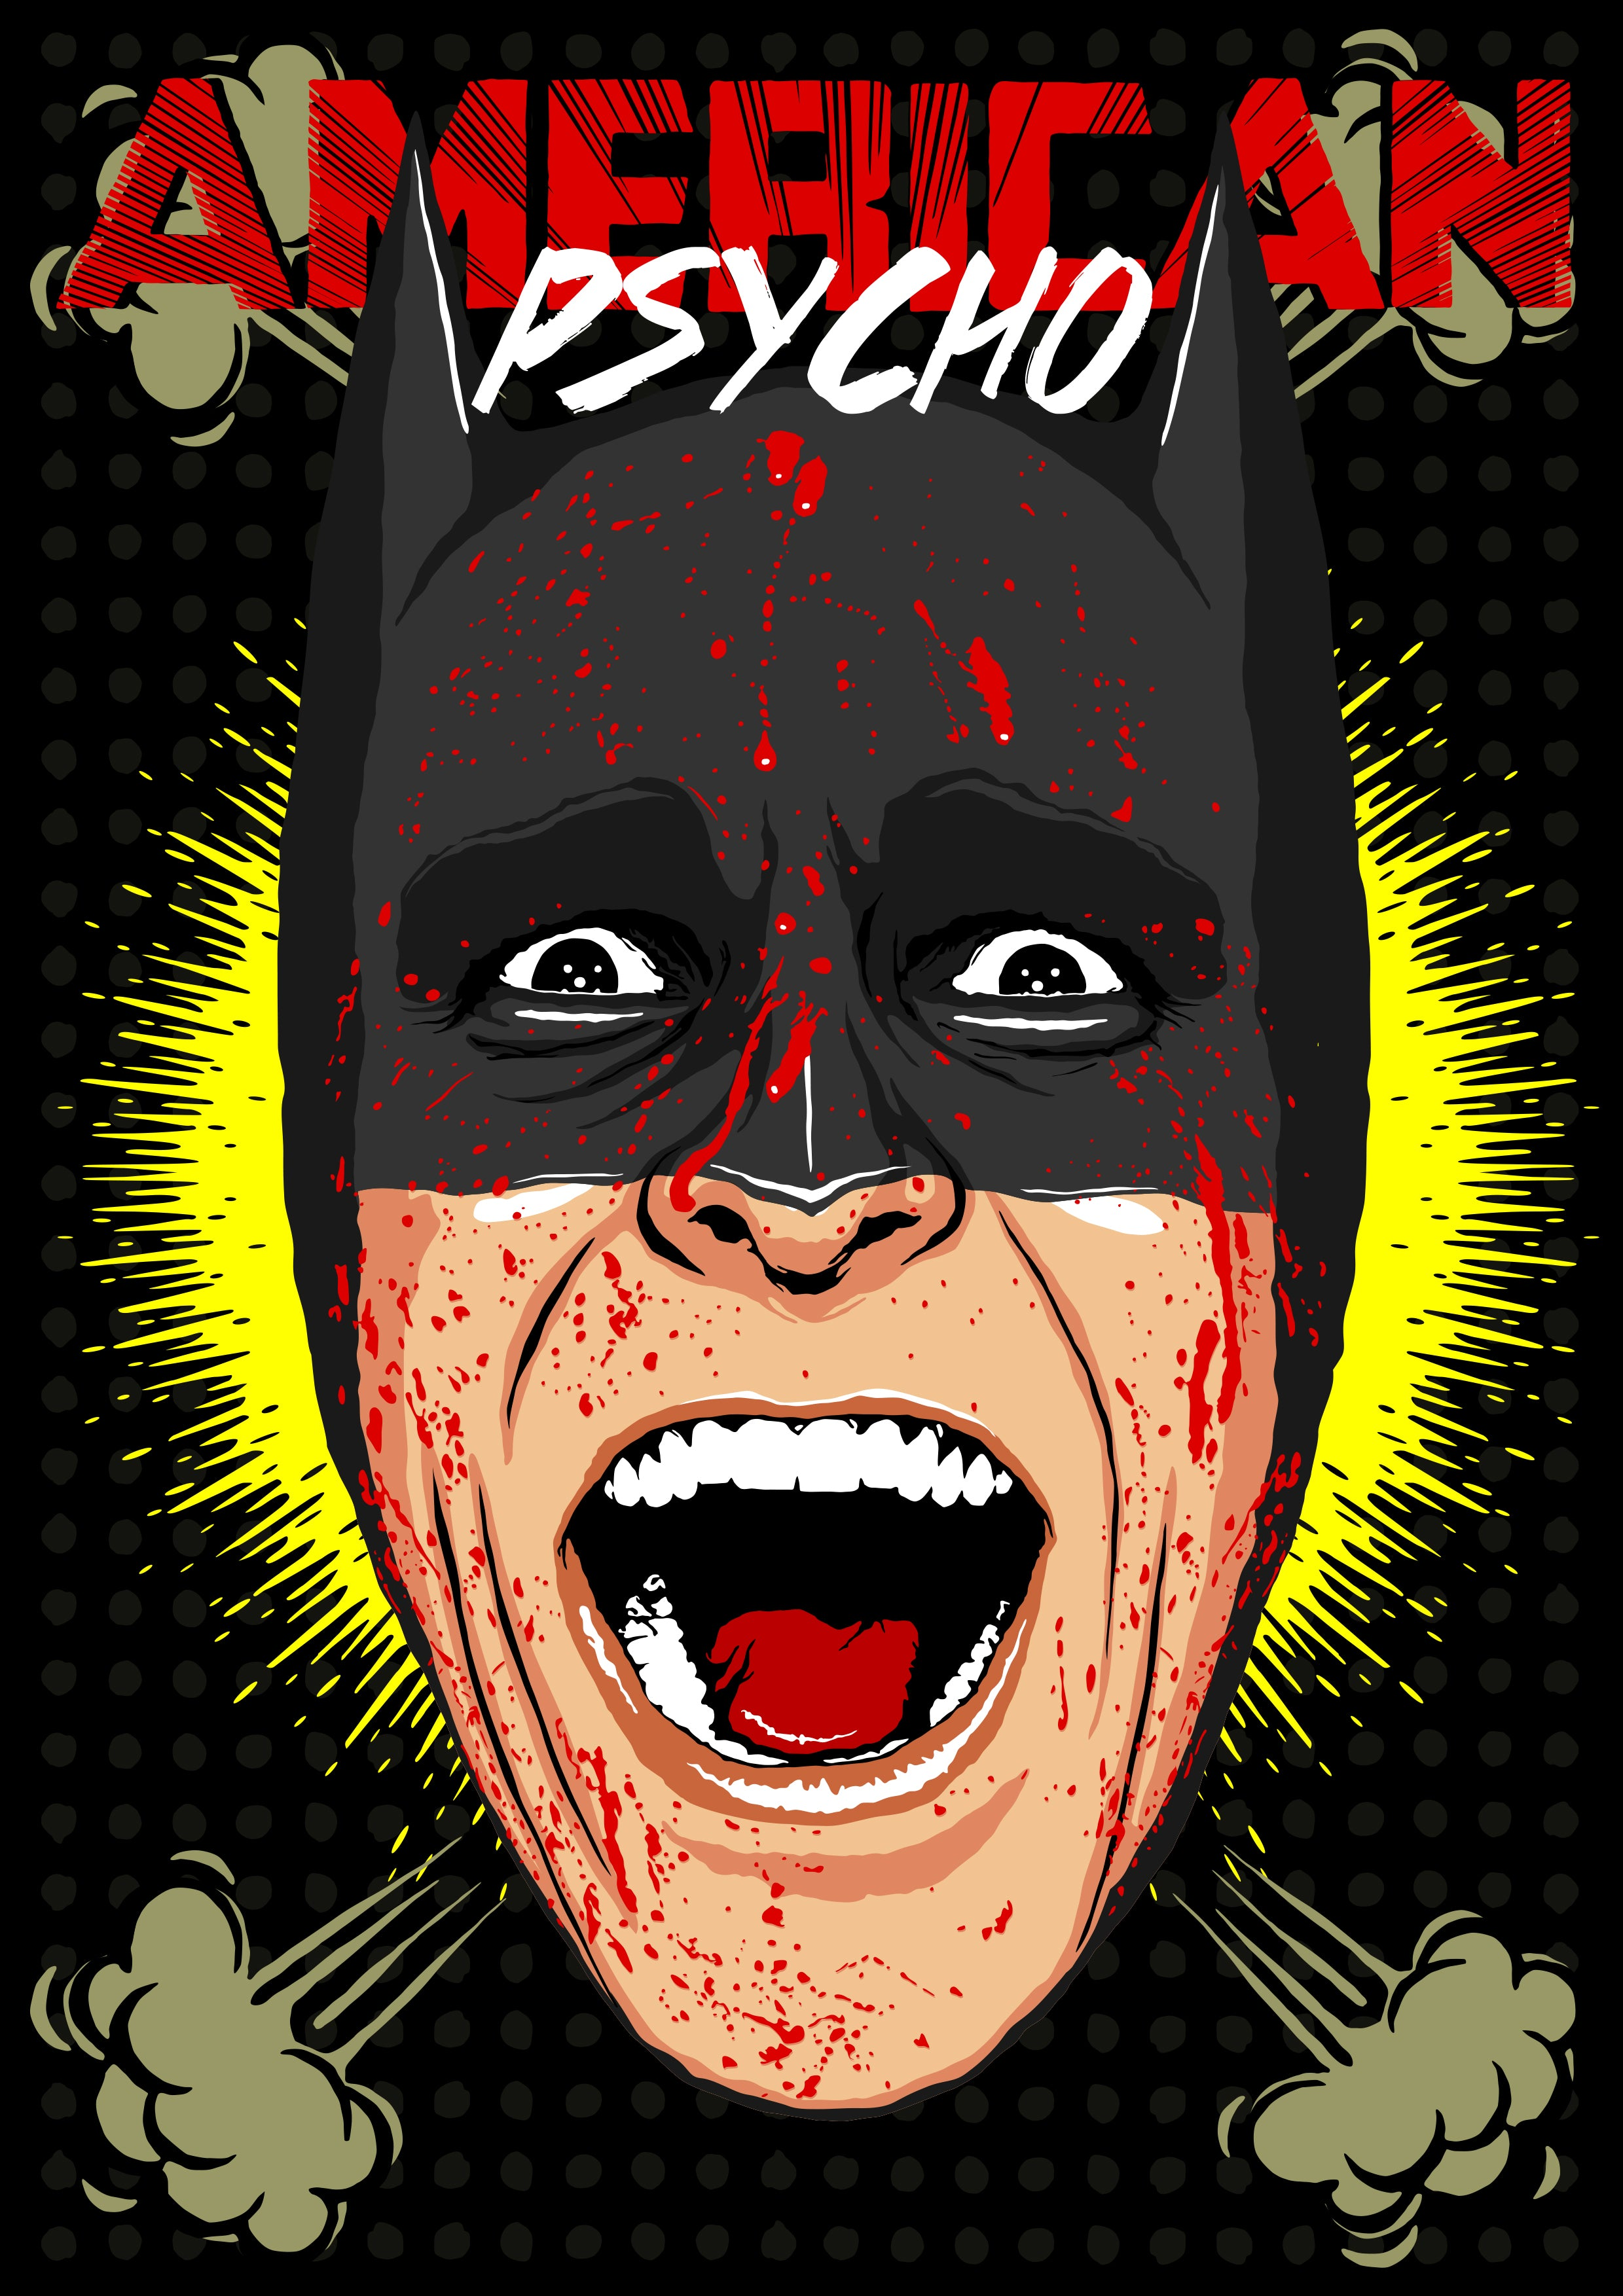 American Psycho - Batman by Butcher Billy